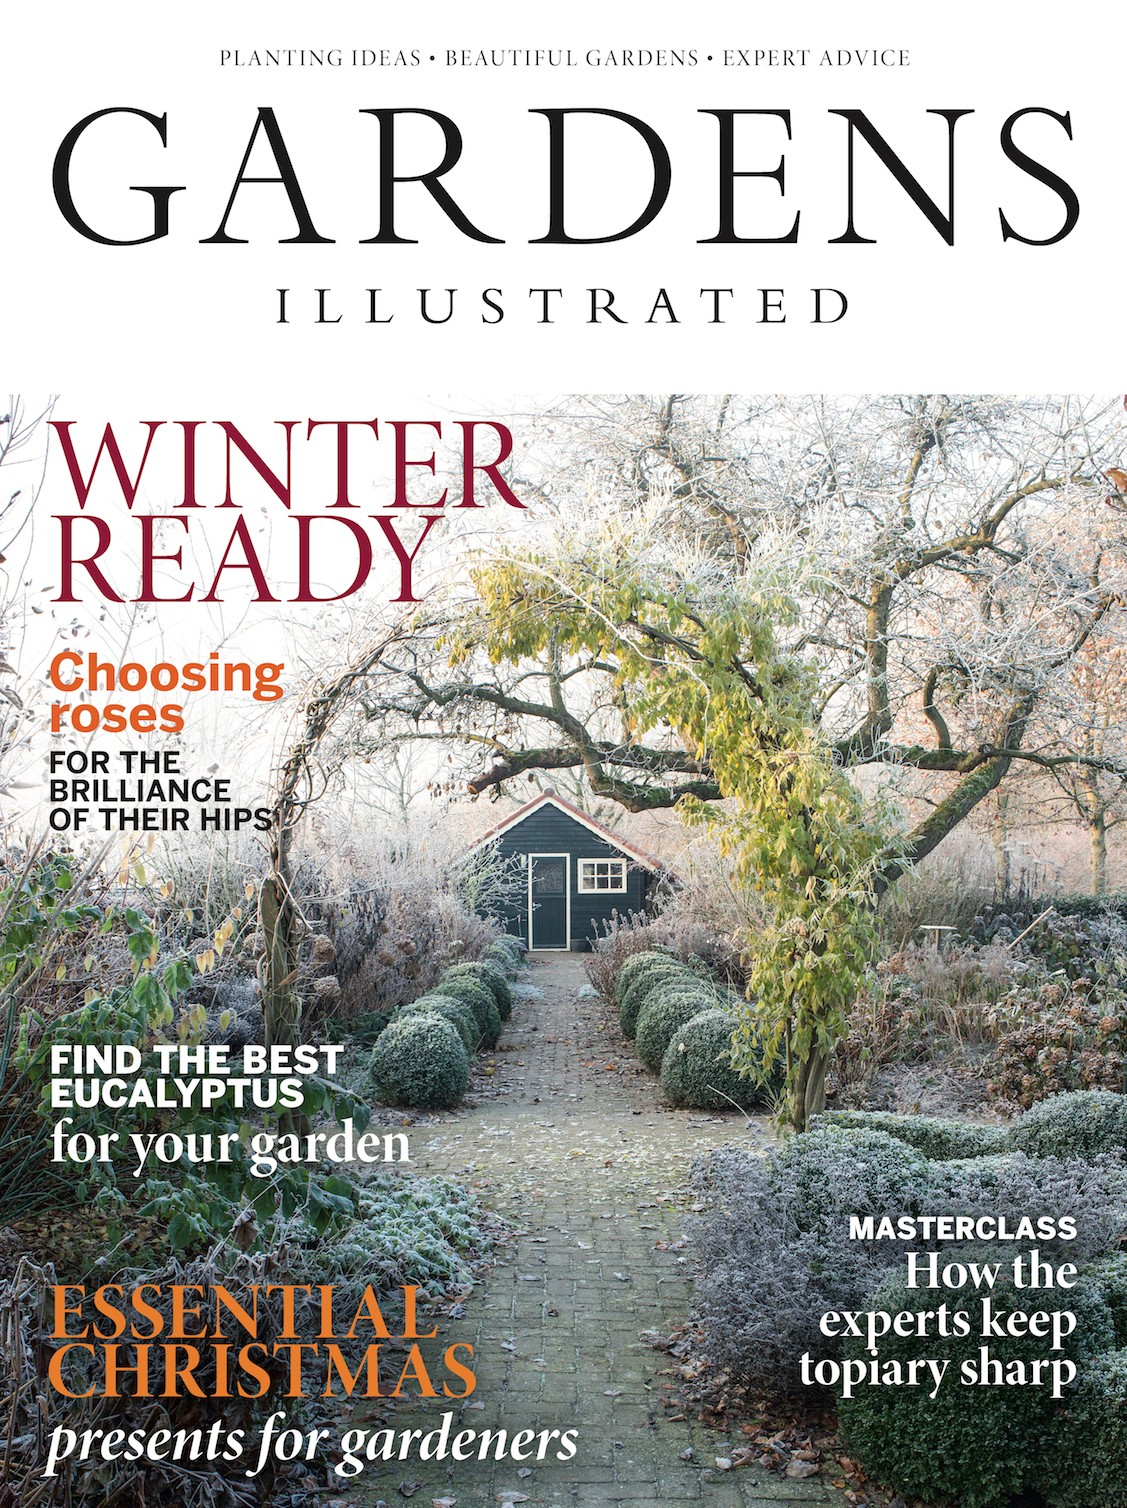 The December 2018 cover of Gardens Illustrated